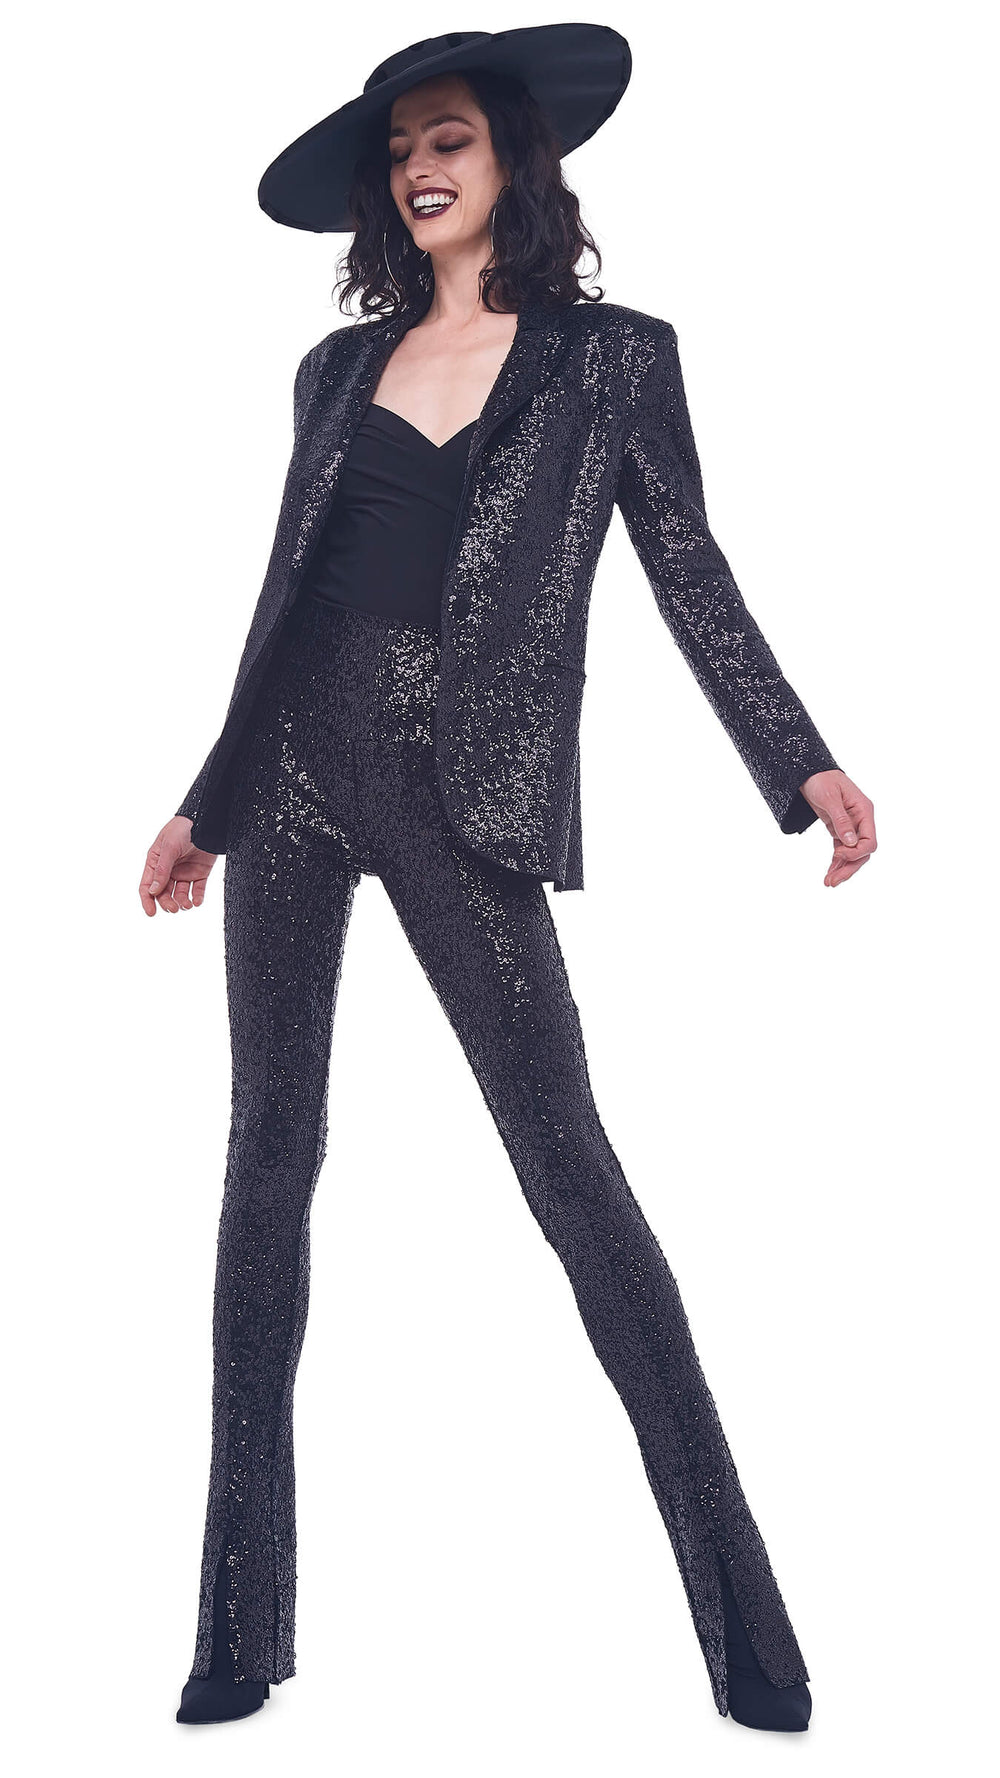 SEQUIN SPAT LEGGING